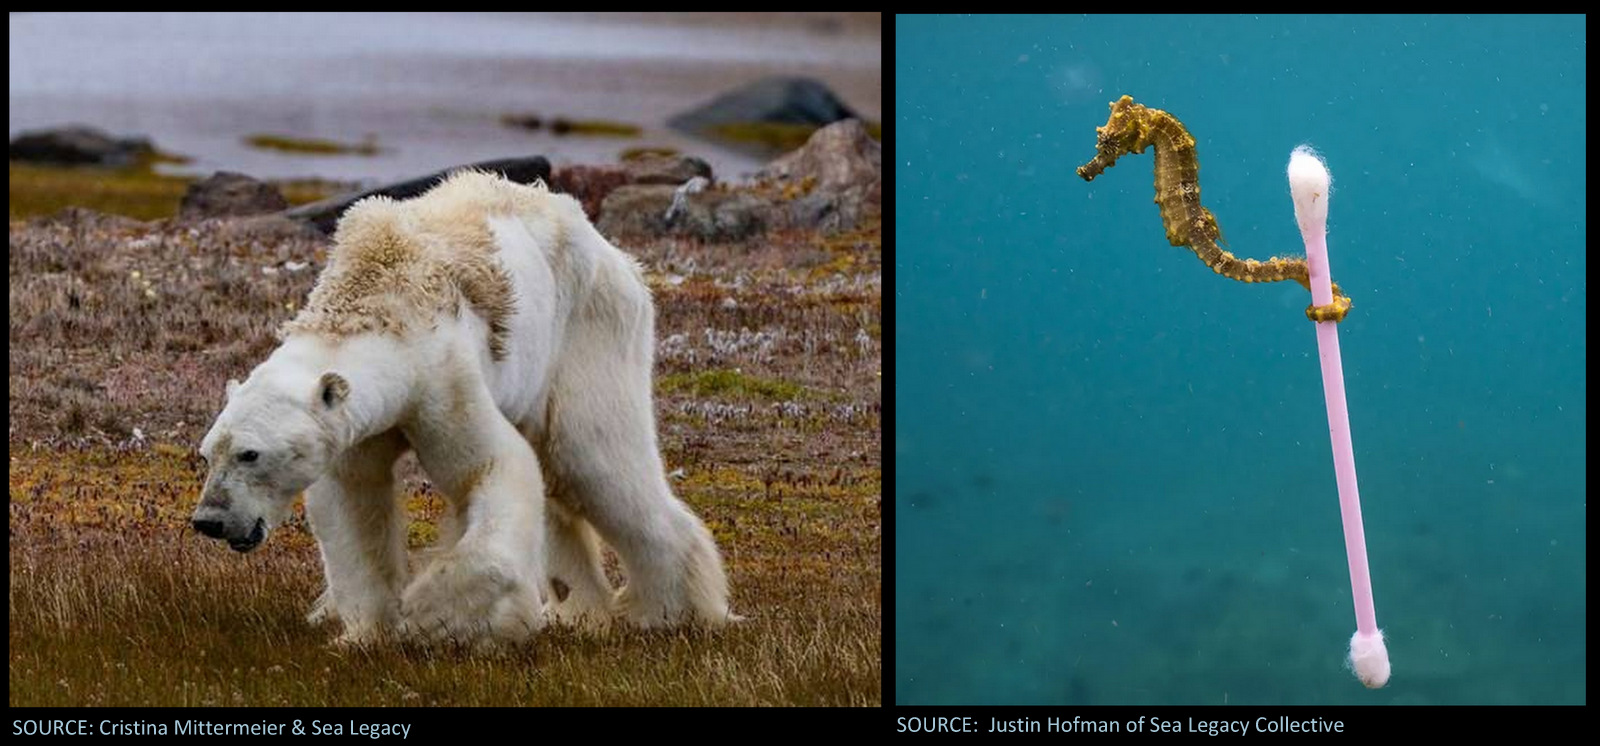 Image: Sea Legacy Collective photographs of starving polar bear and sea horse clinging to a Qtip